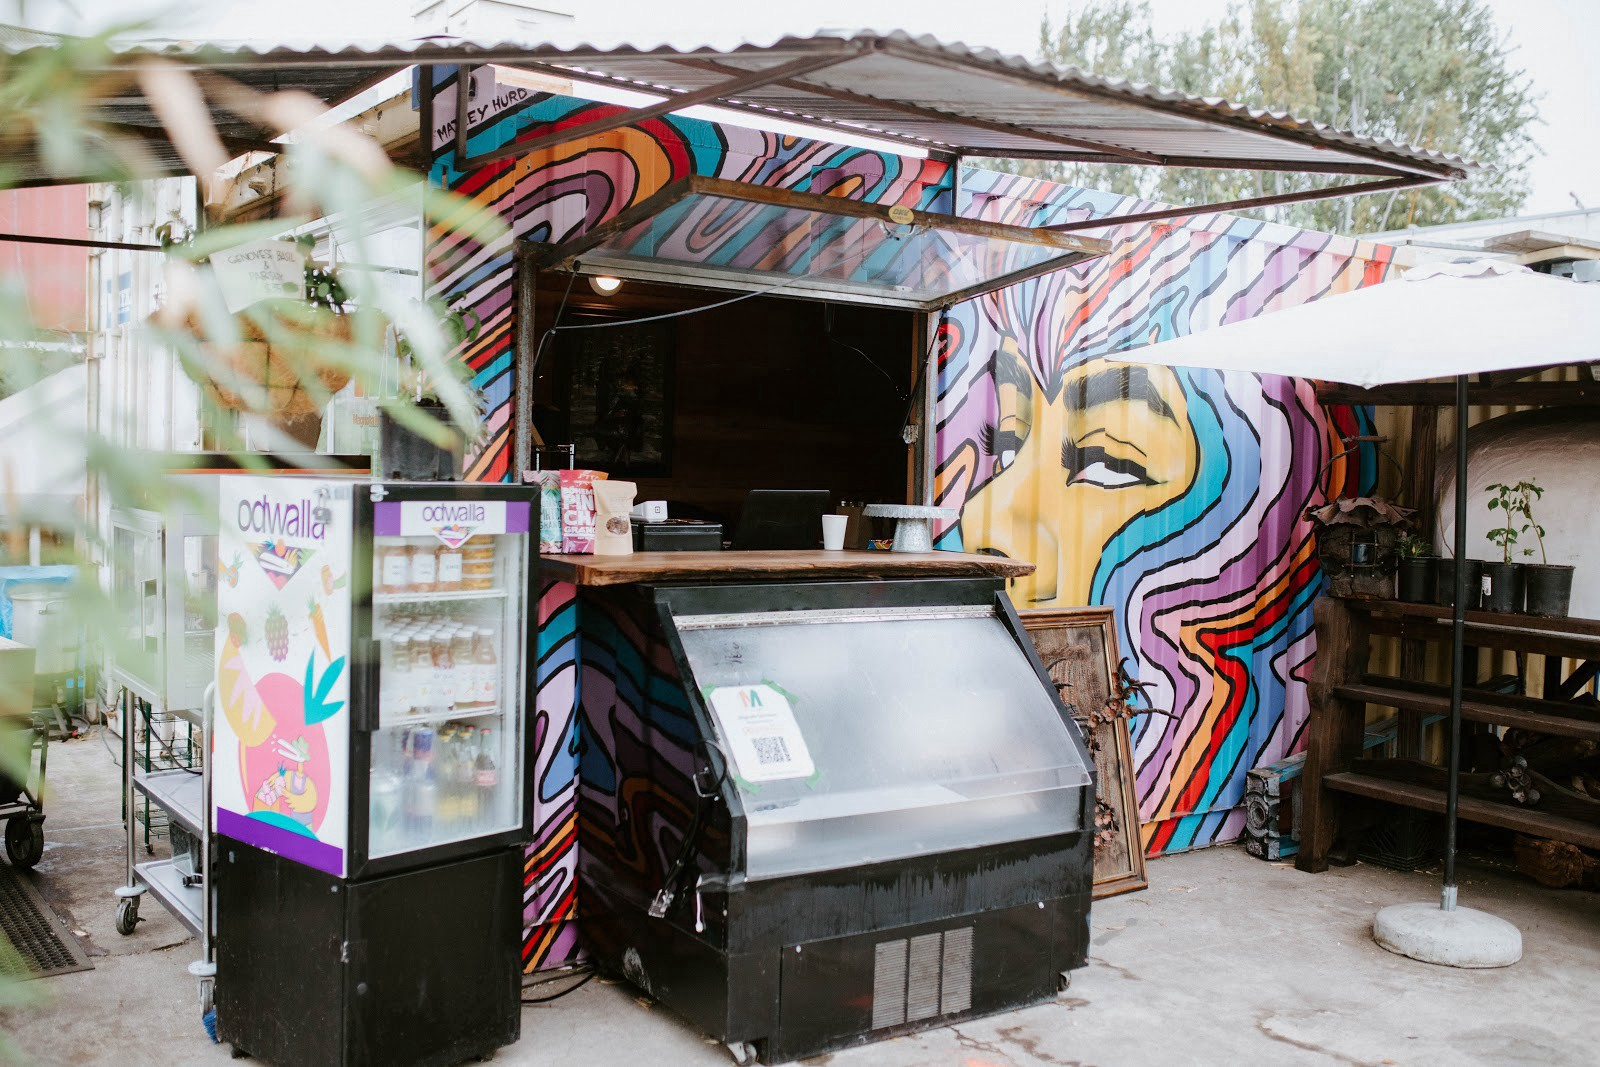 An outdoor food stand with a mural of a long-haired person on its metal walls and two refrigerated cases.